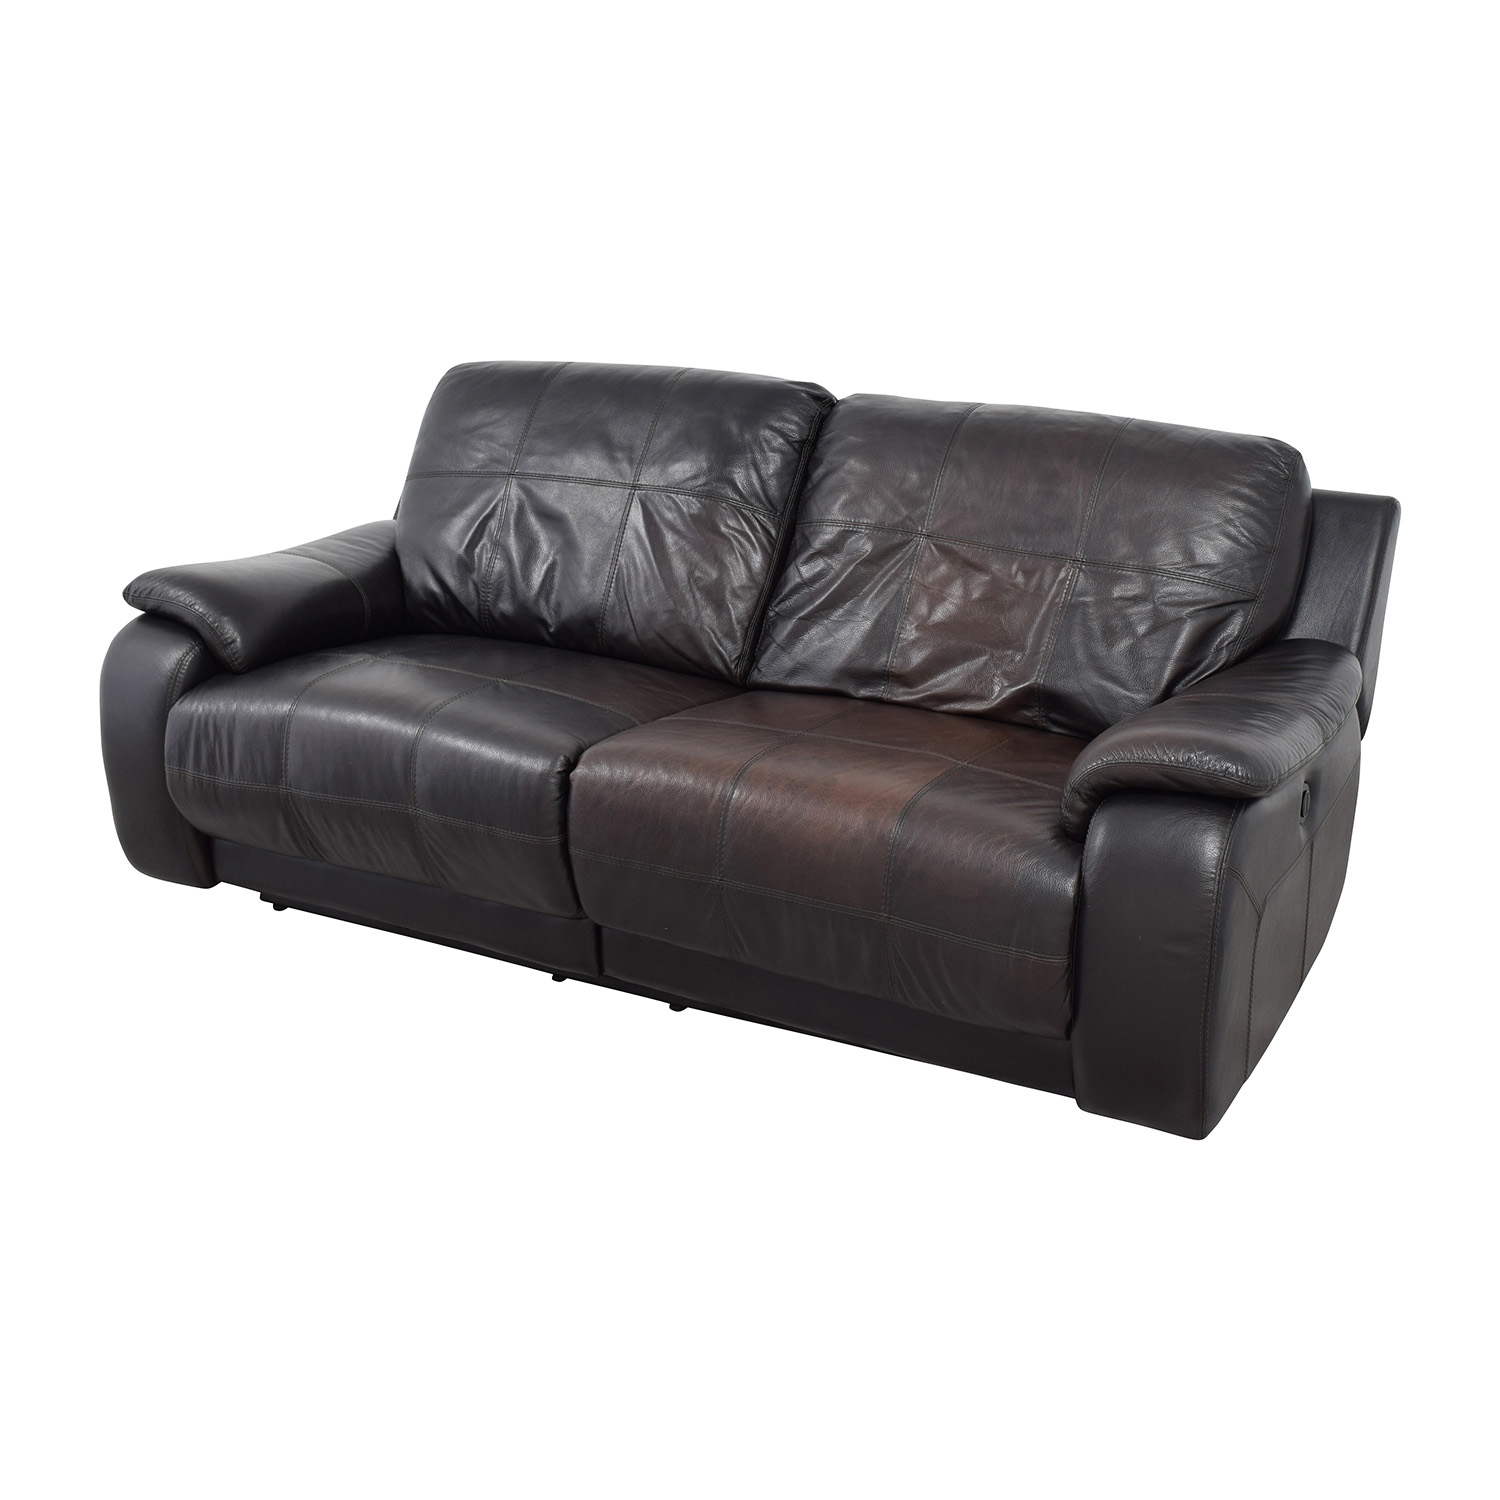 raymour and flanigan chairs plus size lawn 87% off - espresso leather power recliner sofa / sofas